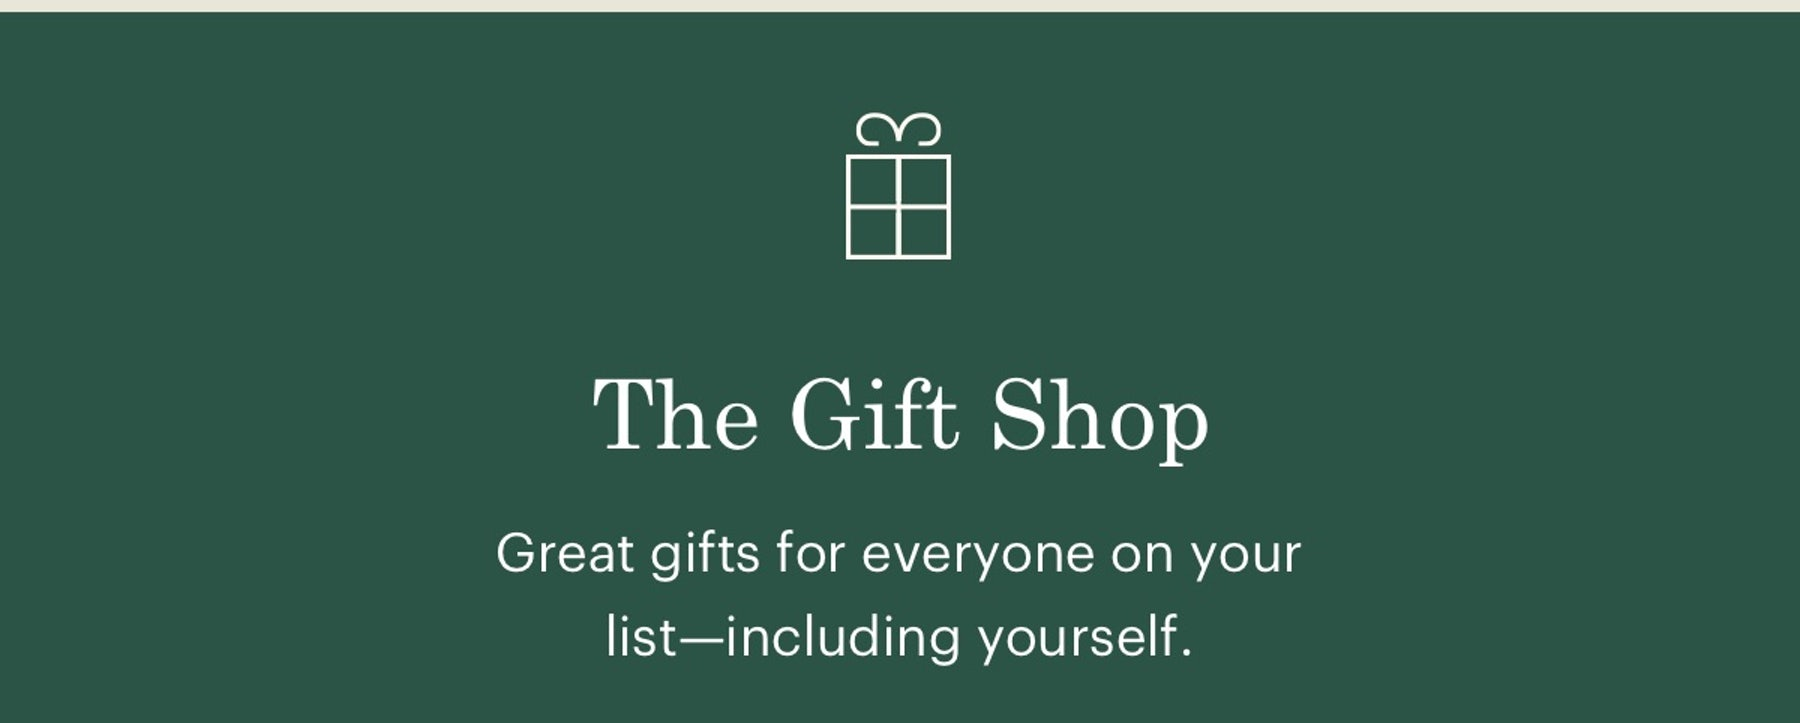 The Gift Shop. Great gifts for everyone on your list-including yourself.